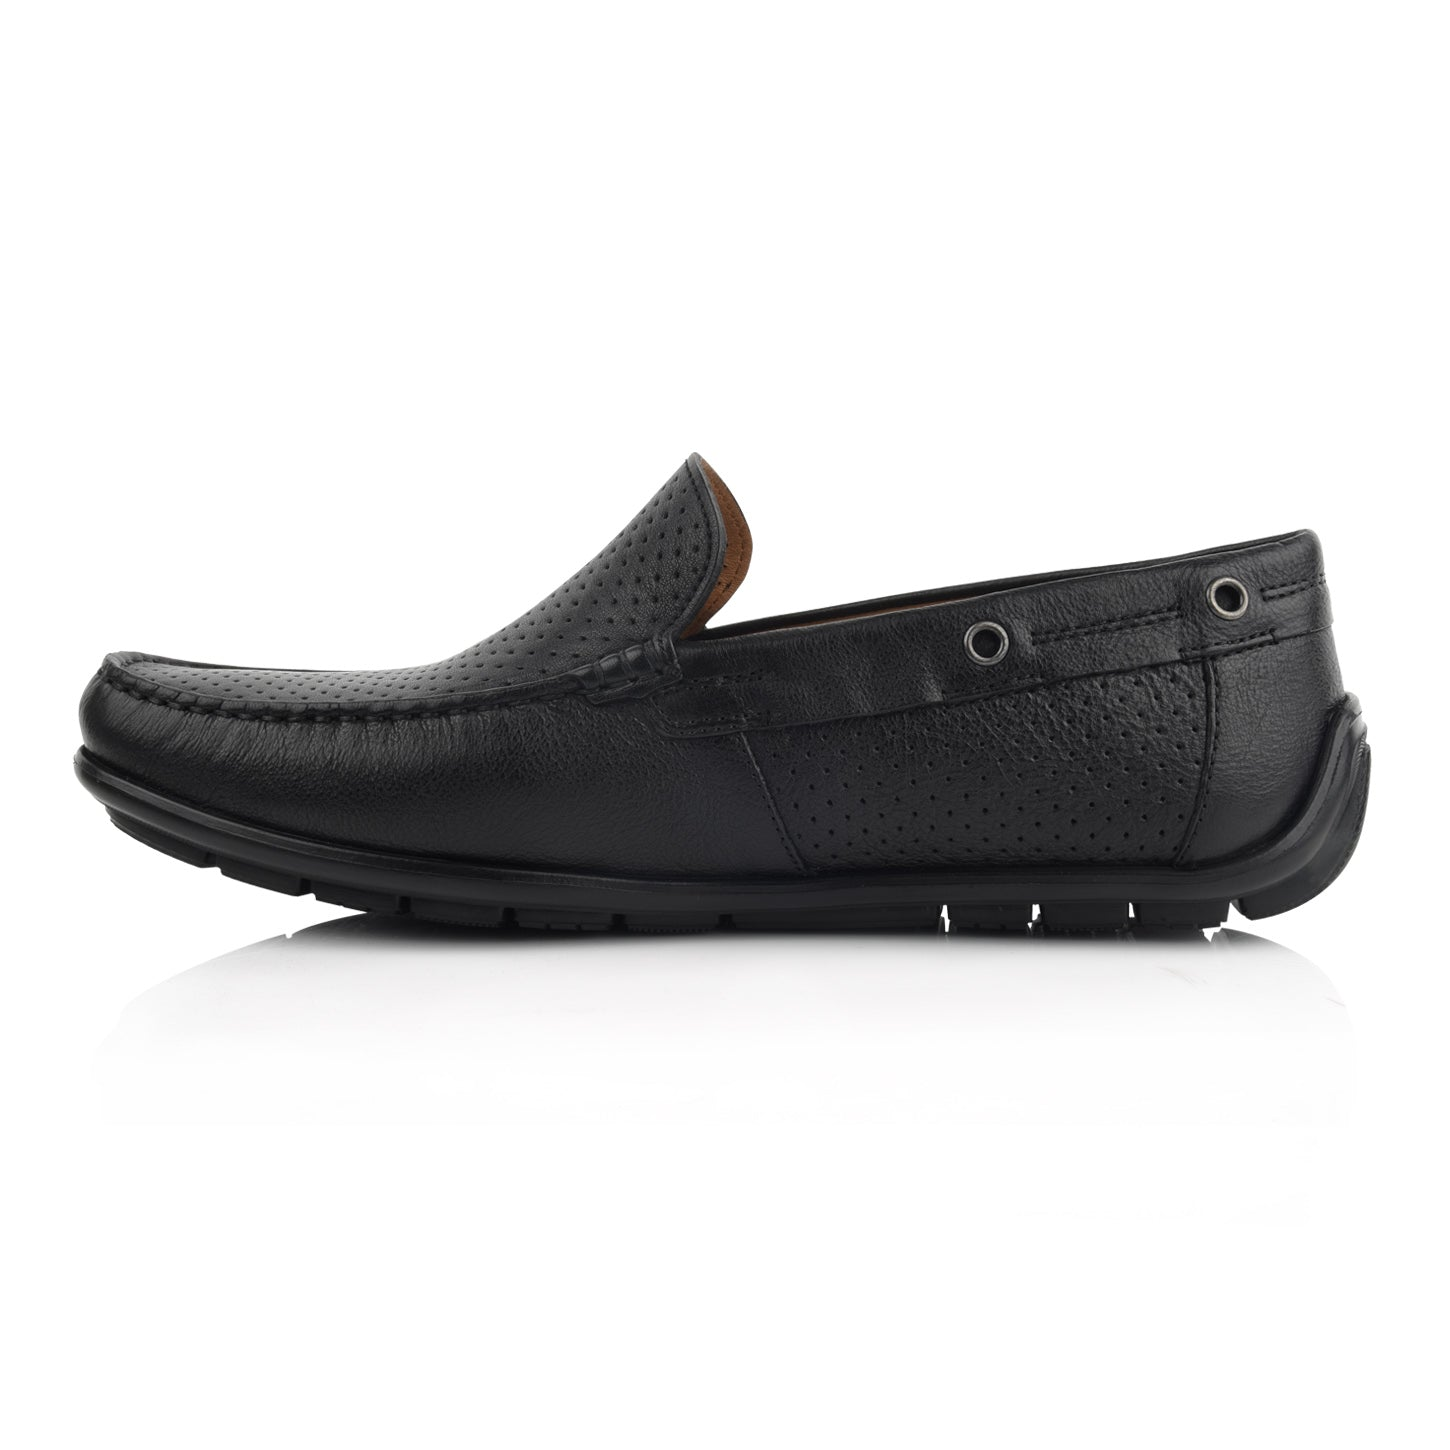 LM880 - Language Raya Men's Black  Dress Moccasin